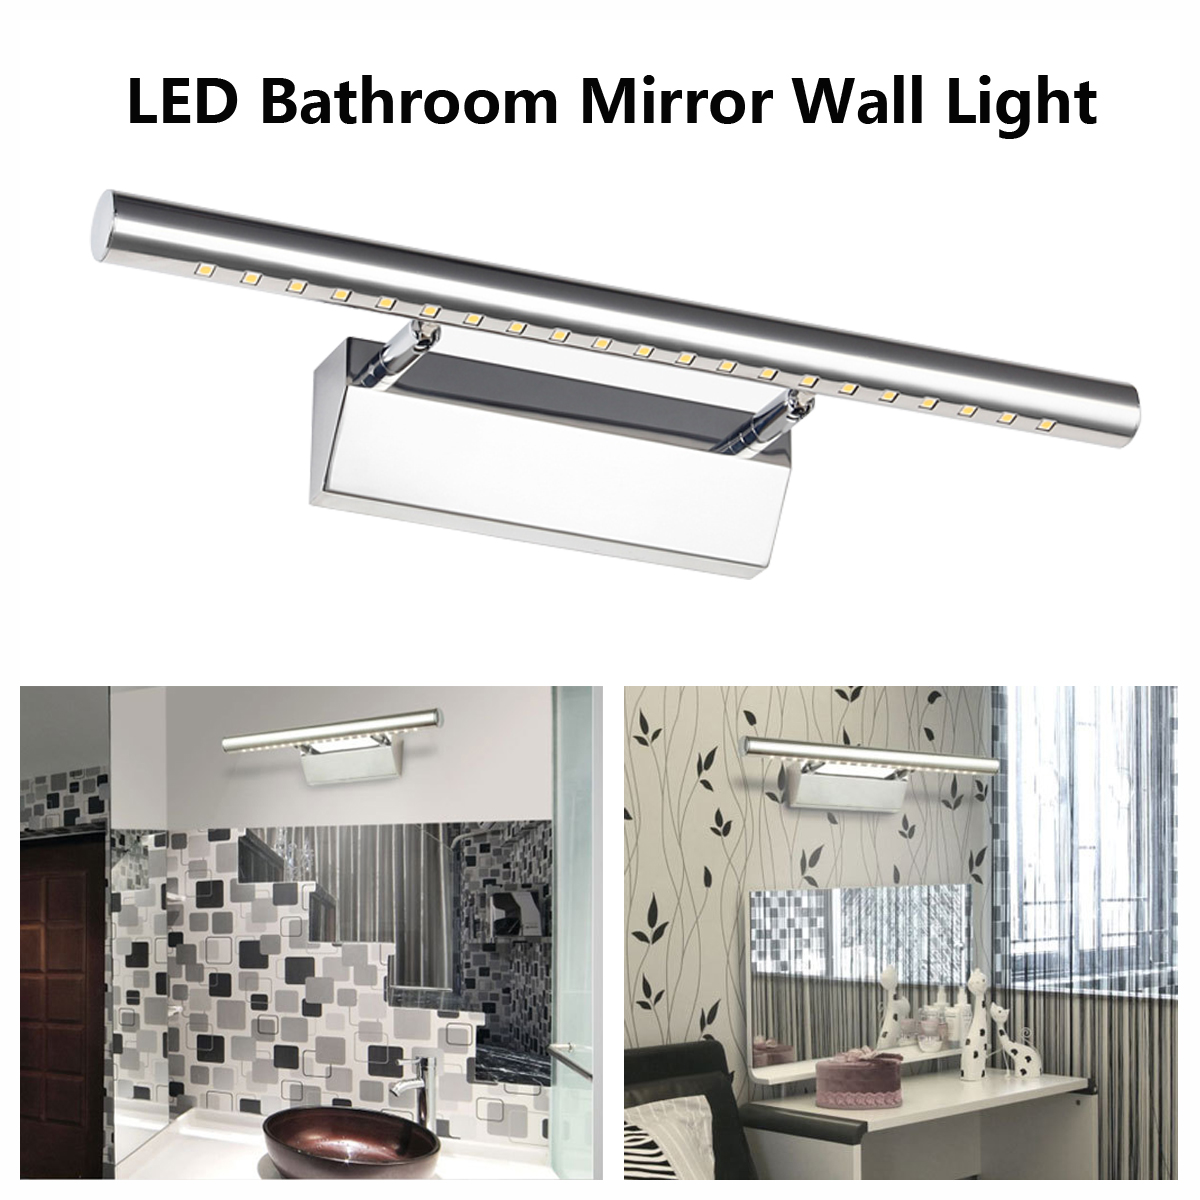 7W LED Mirror Front Light Bathroom Toilet Wall Lamp Home Make-up Vanity Light by